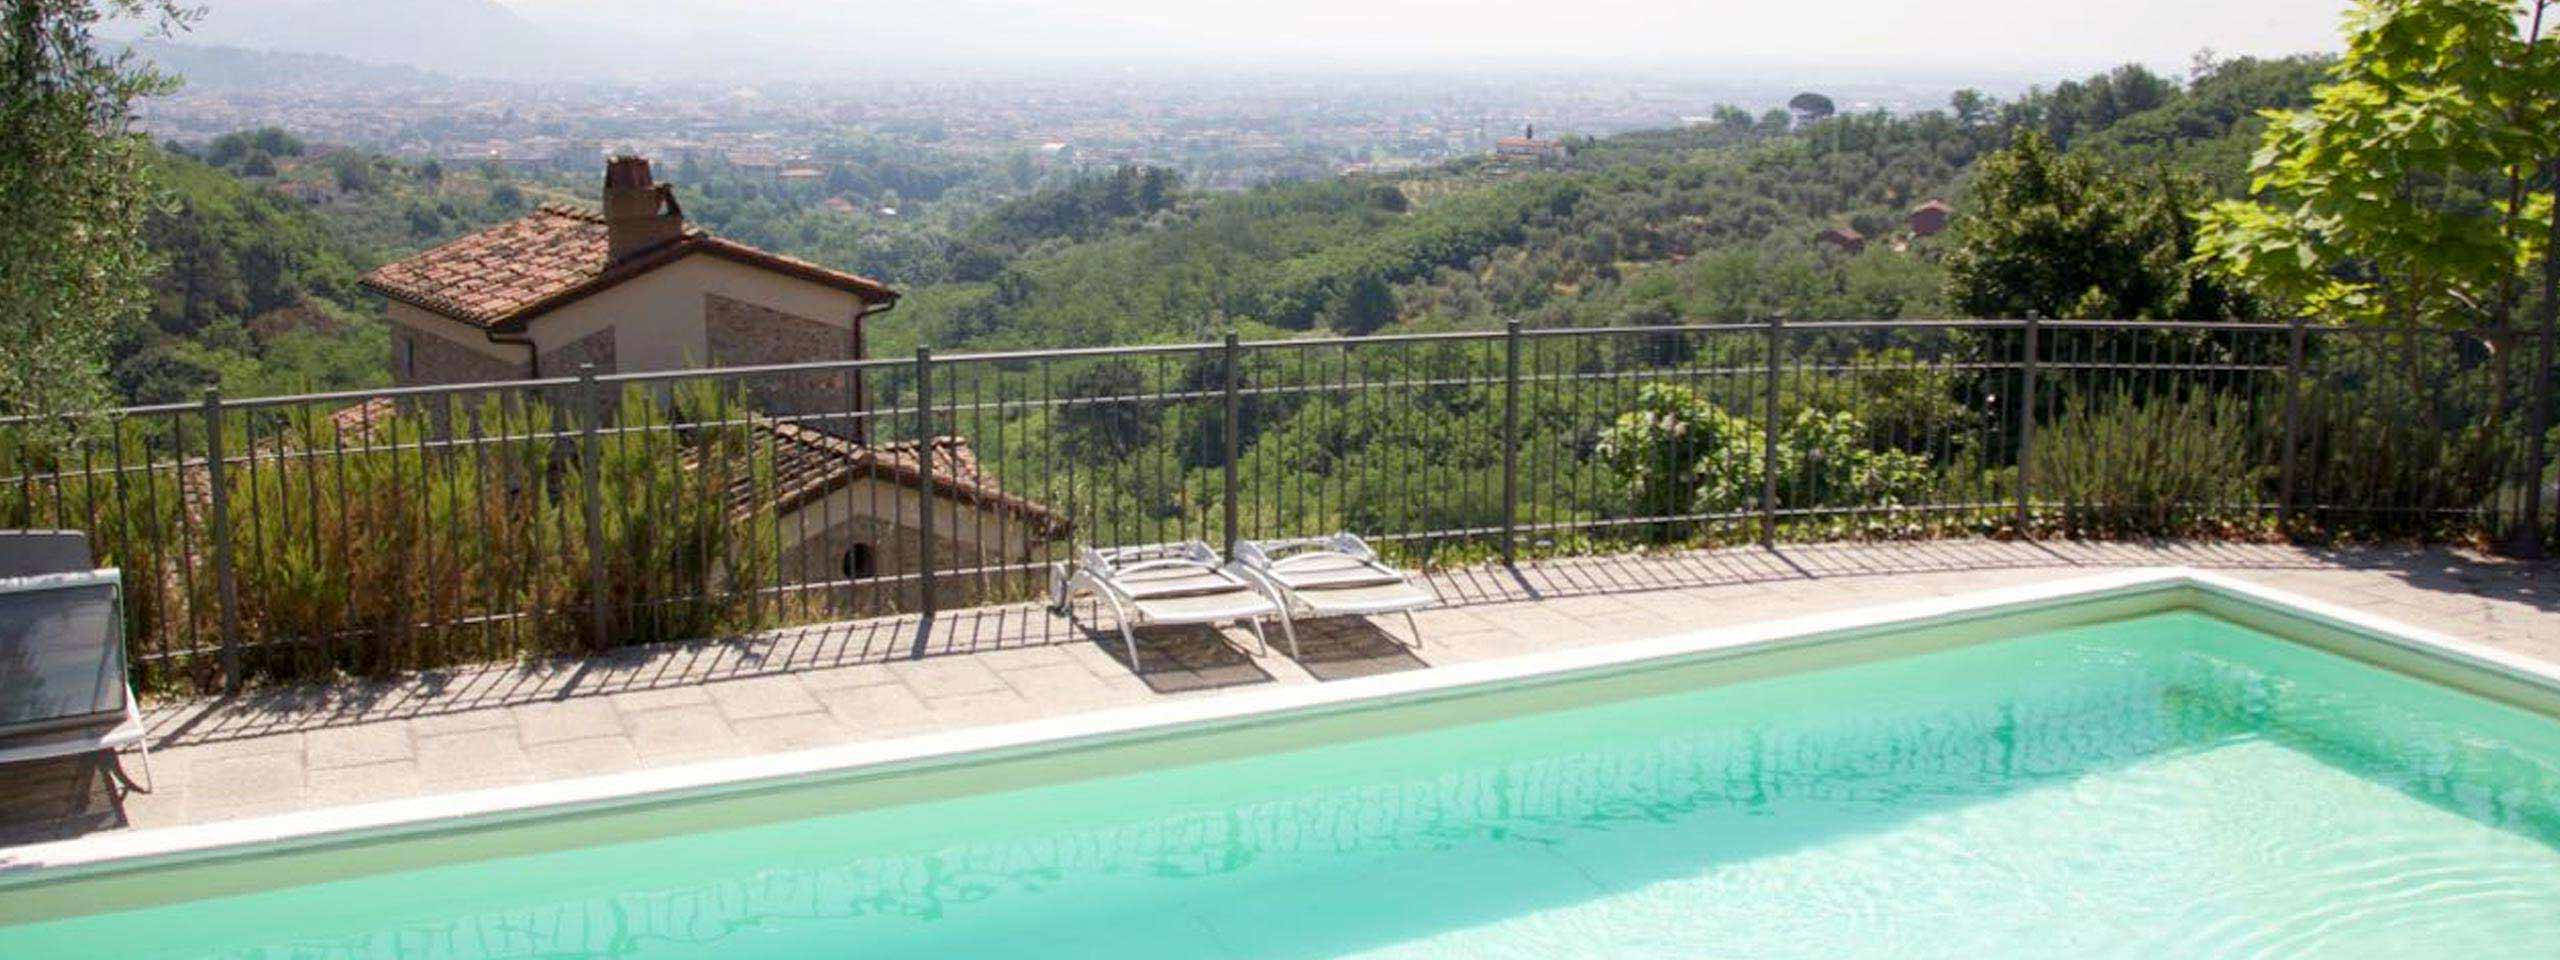 Bed and Breakfast di charme in Toscana